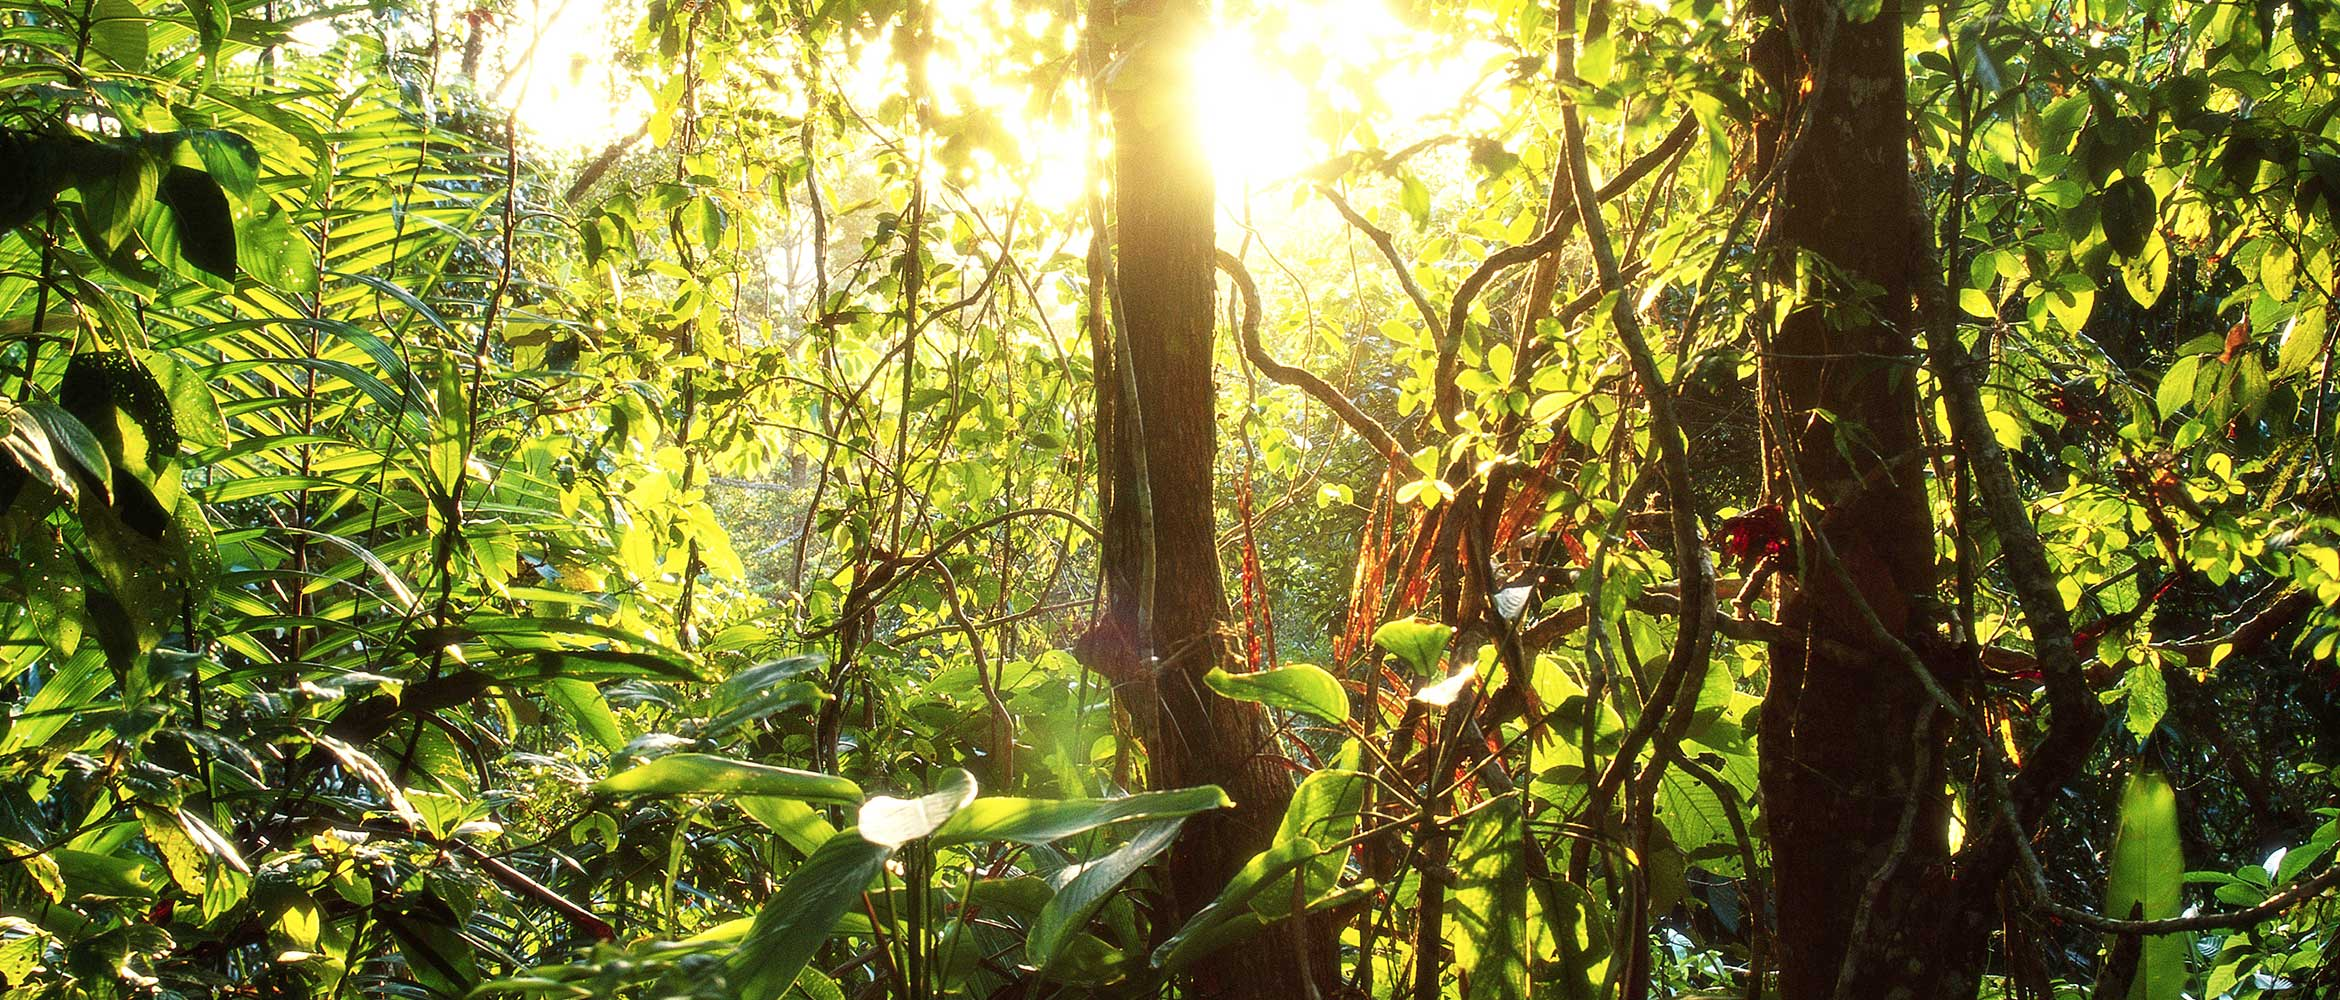 Leafy green jungle illuminated by sun's rays